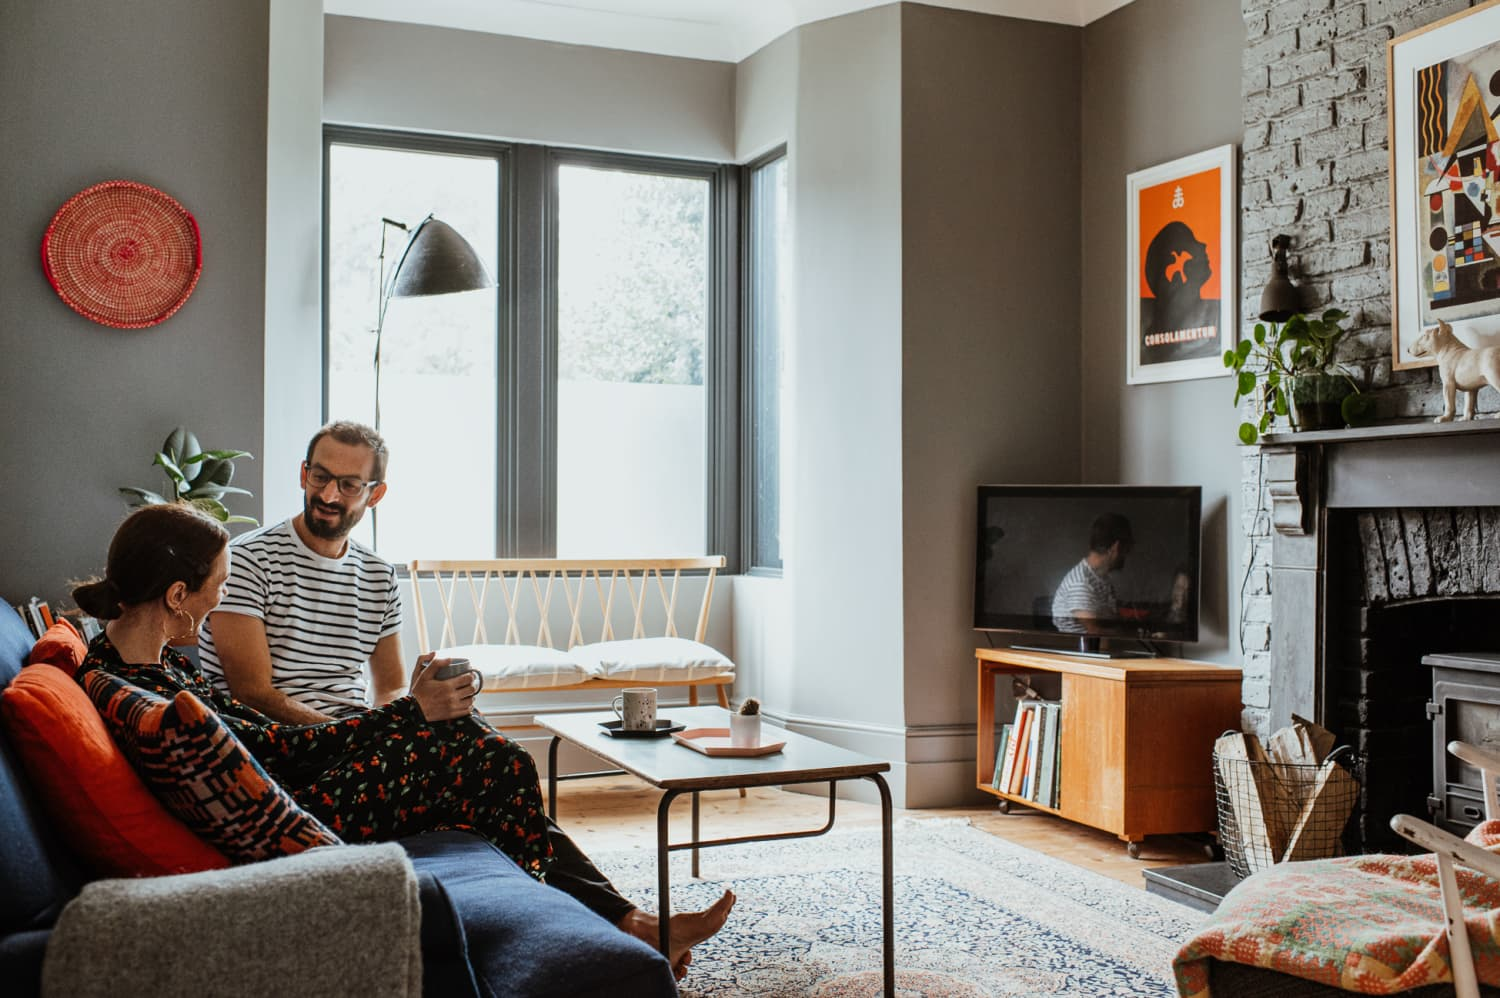 This Renovated London Home Is Your Inspiration for Industrial Meets Scandi-Inspired Style